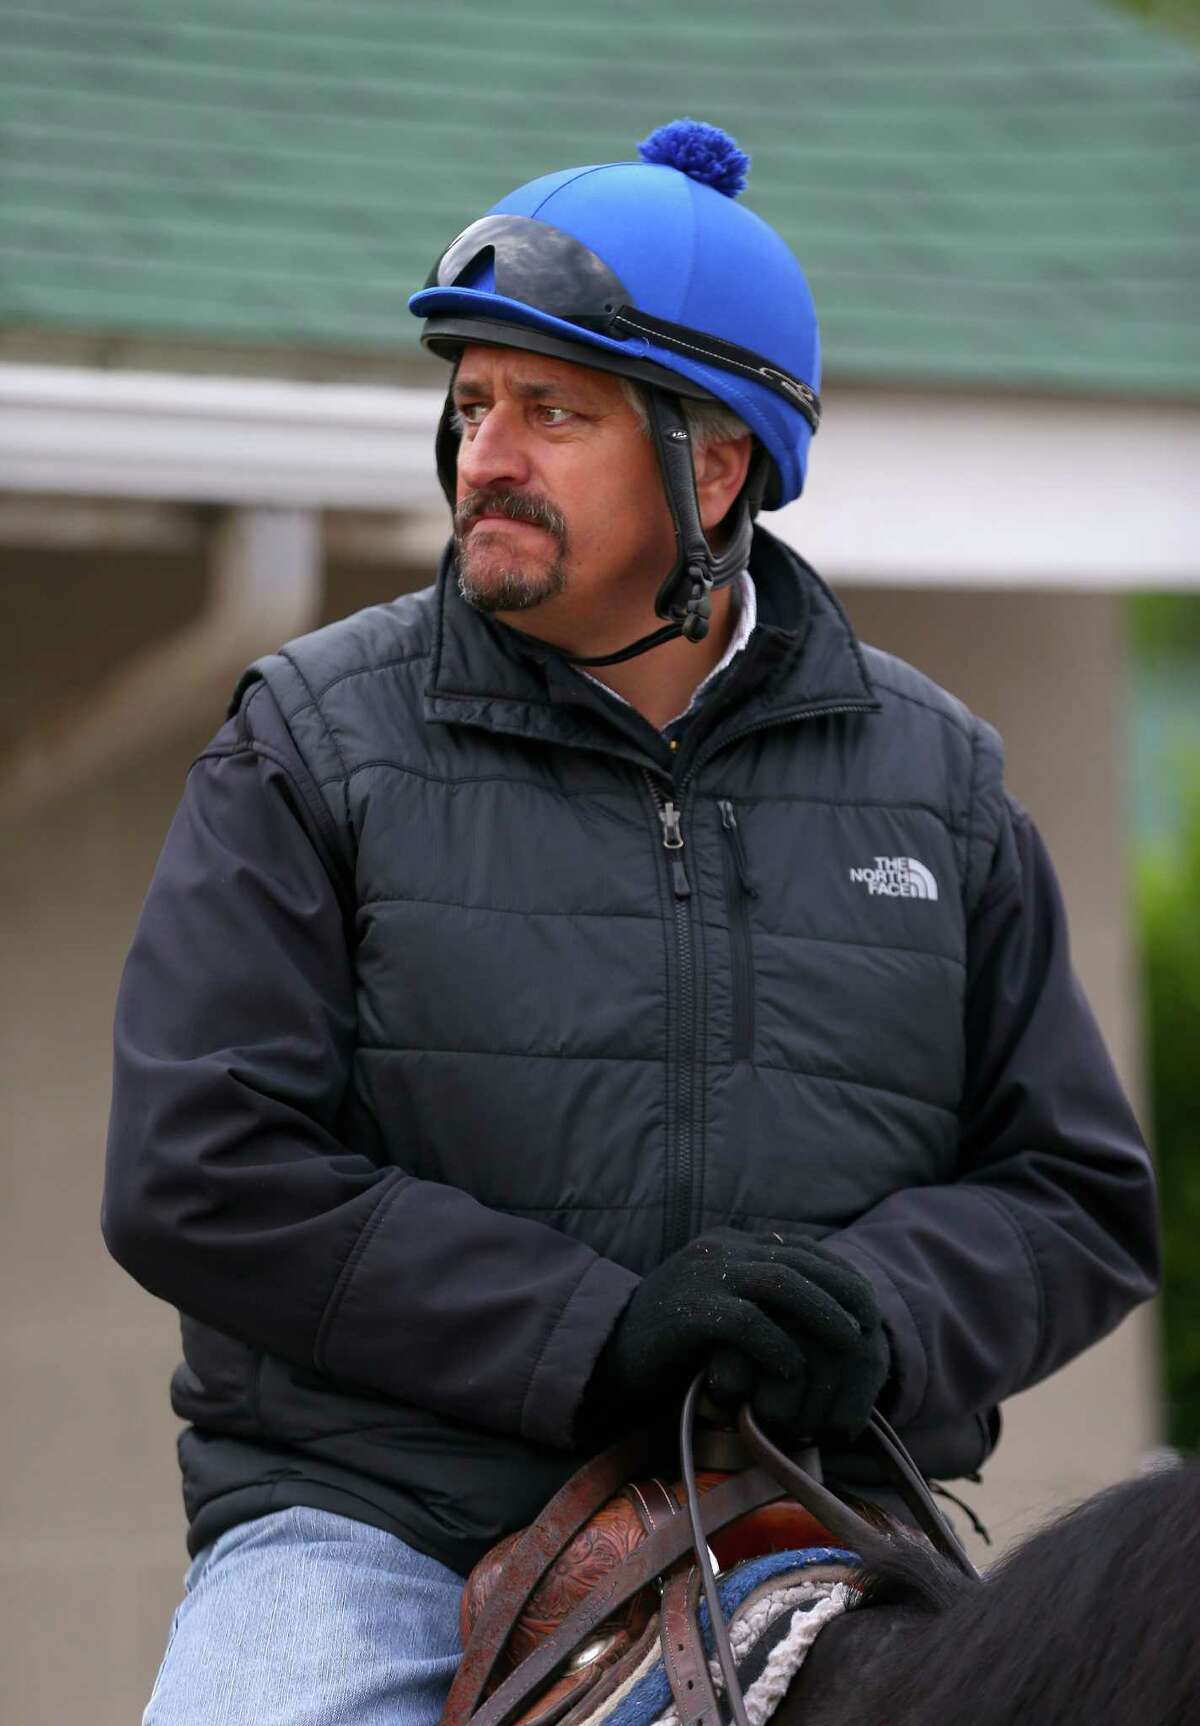 LOUISVILLE, KY - MAY 01: Steve Asmussen the trainer of Tapiture sits on his horse during the morning training for the Kentucky Derby at Churchill Downs on May 1, 2014 in Louisville, Kentucky. (Photo by Andy Lyons/Getty Images)